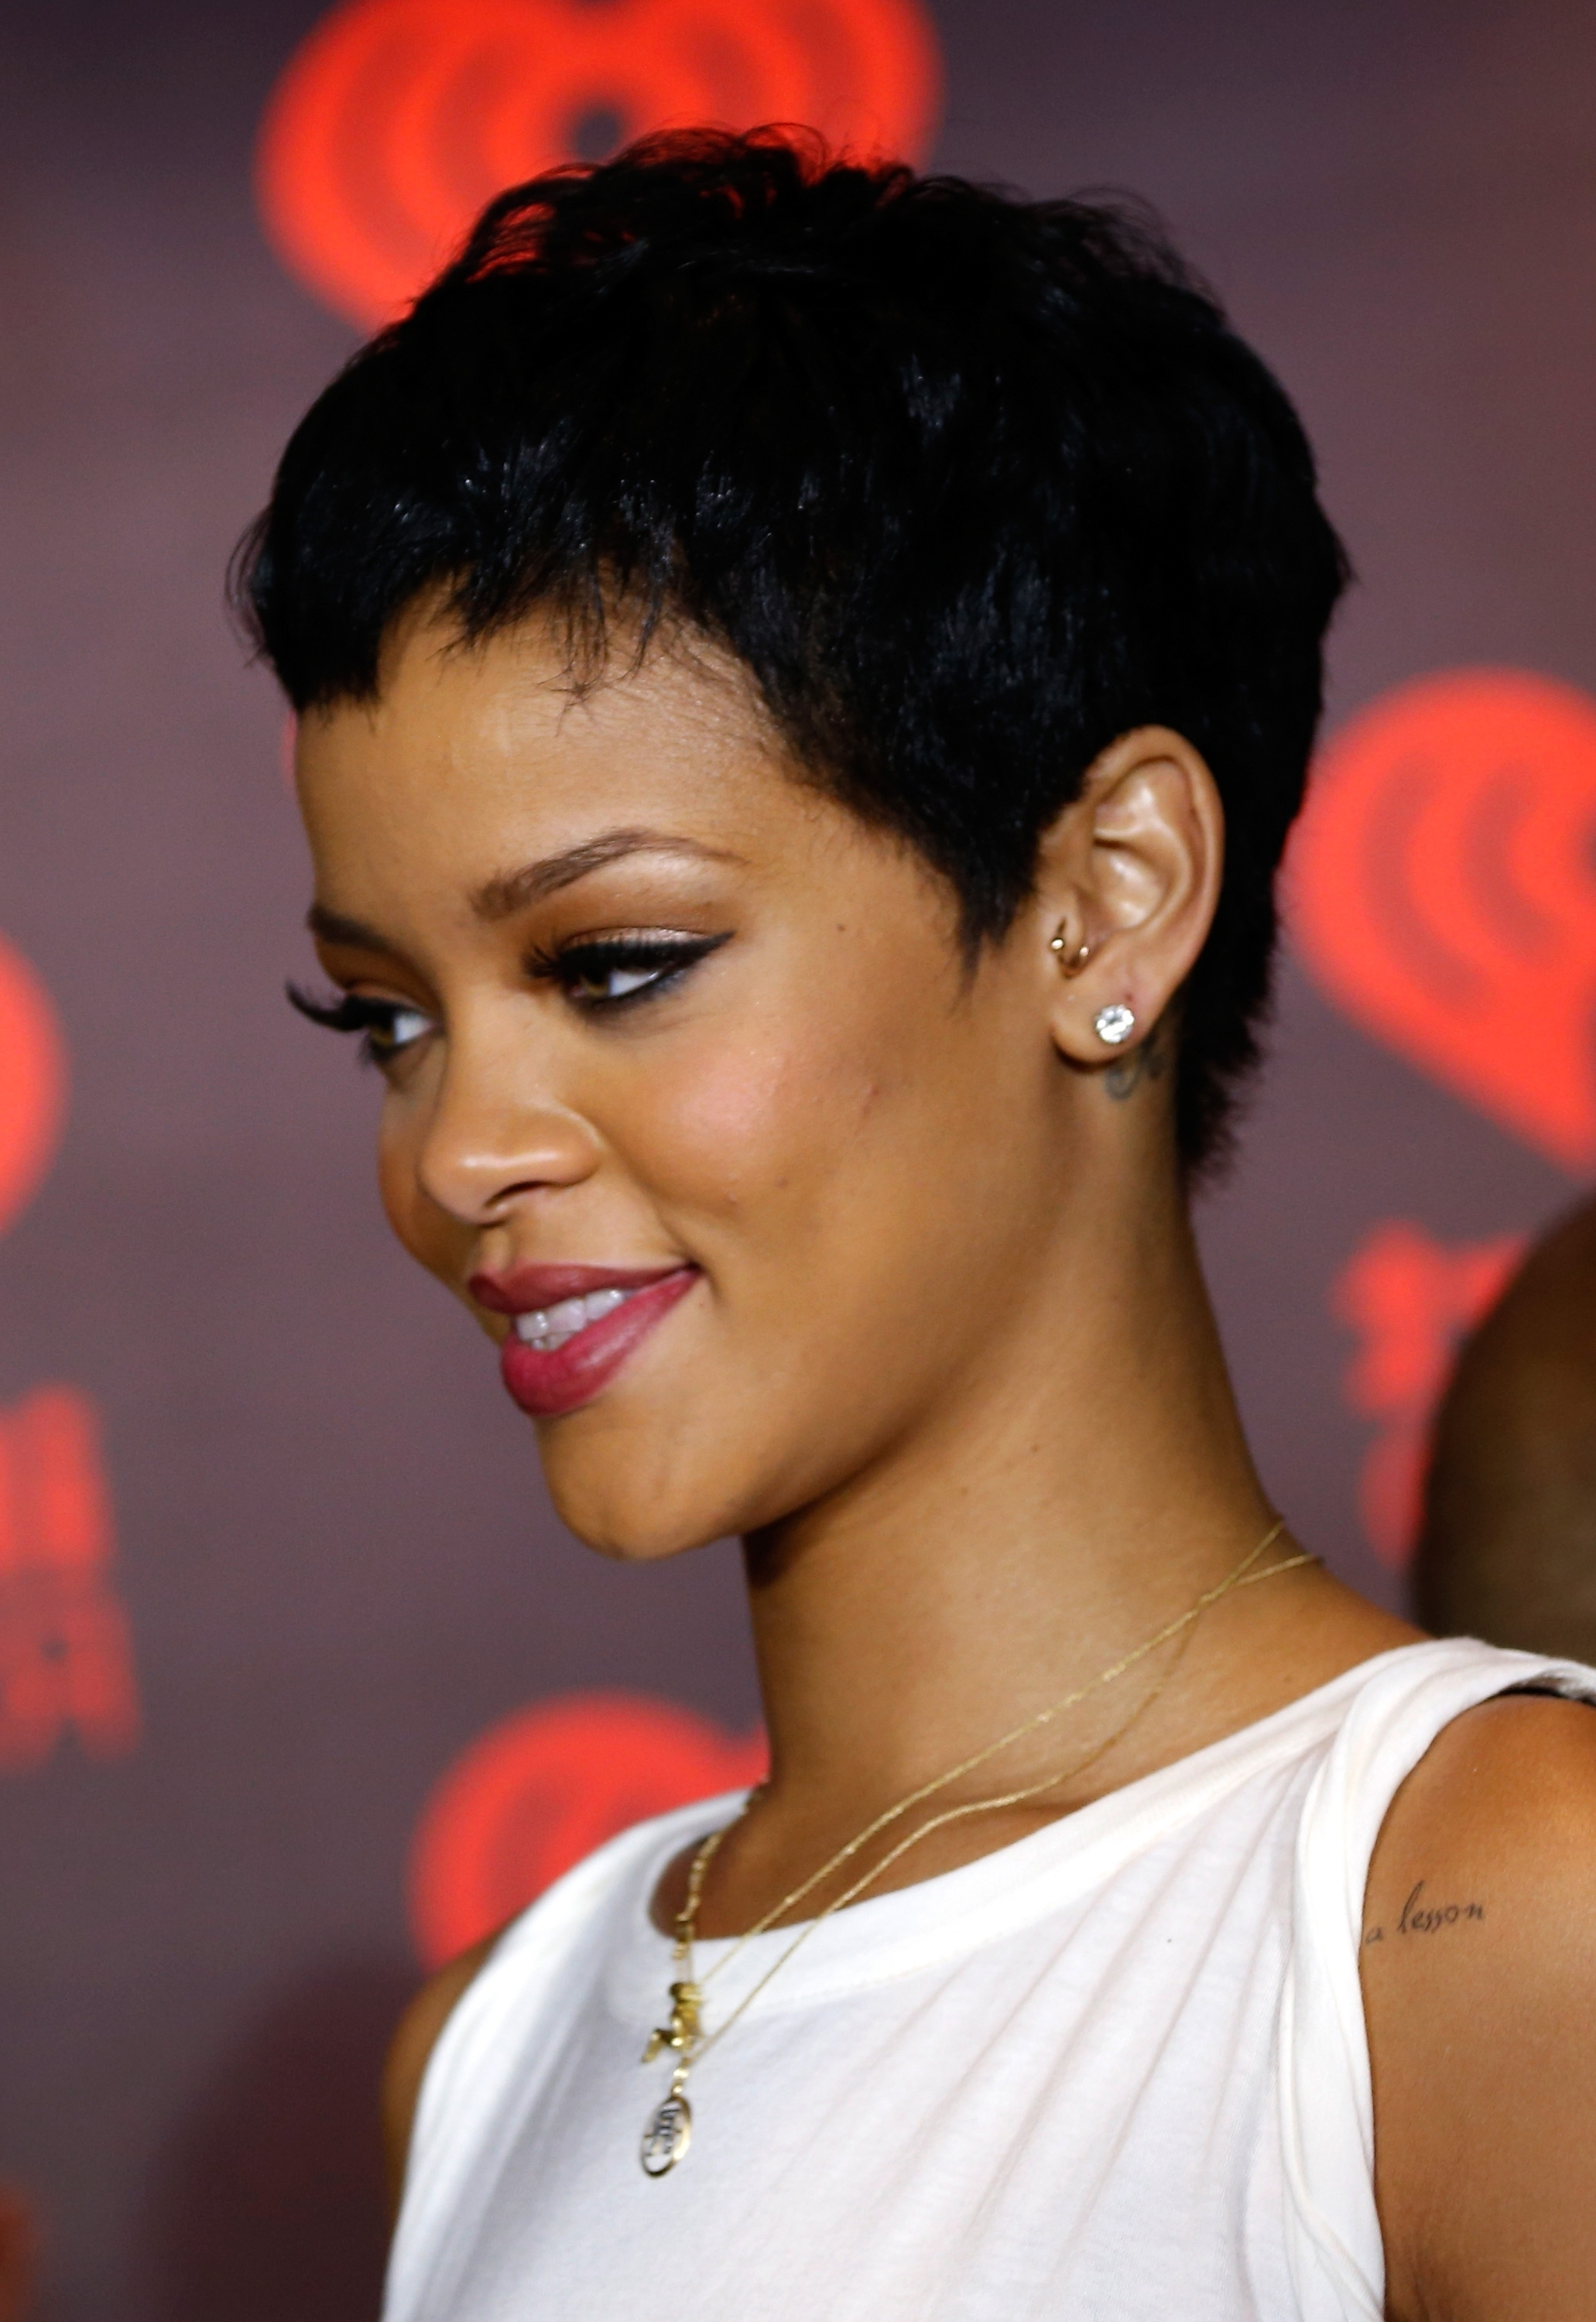 Rihanna Haircut 2014 Haircuts Models Ideas